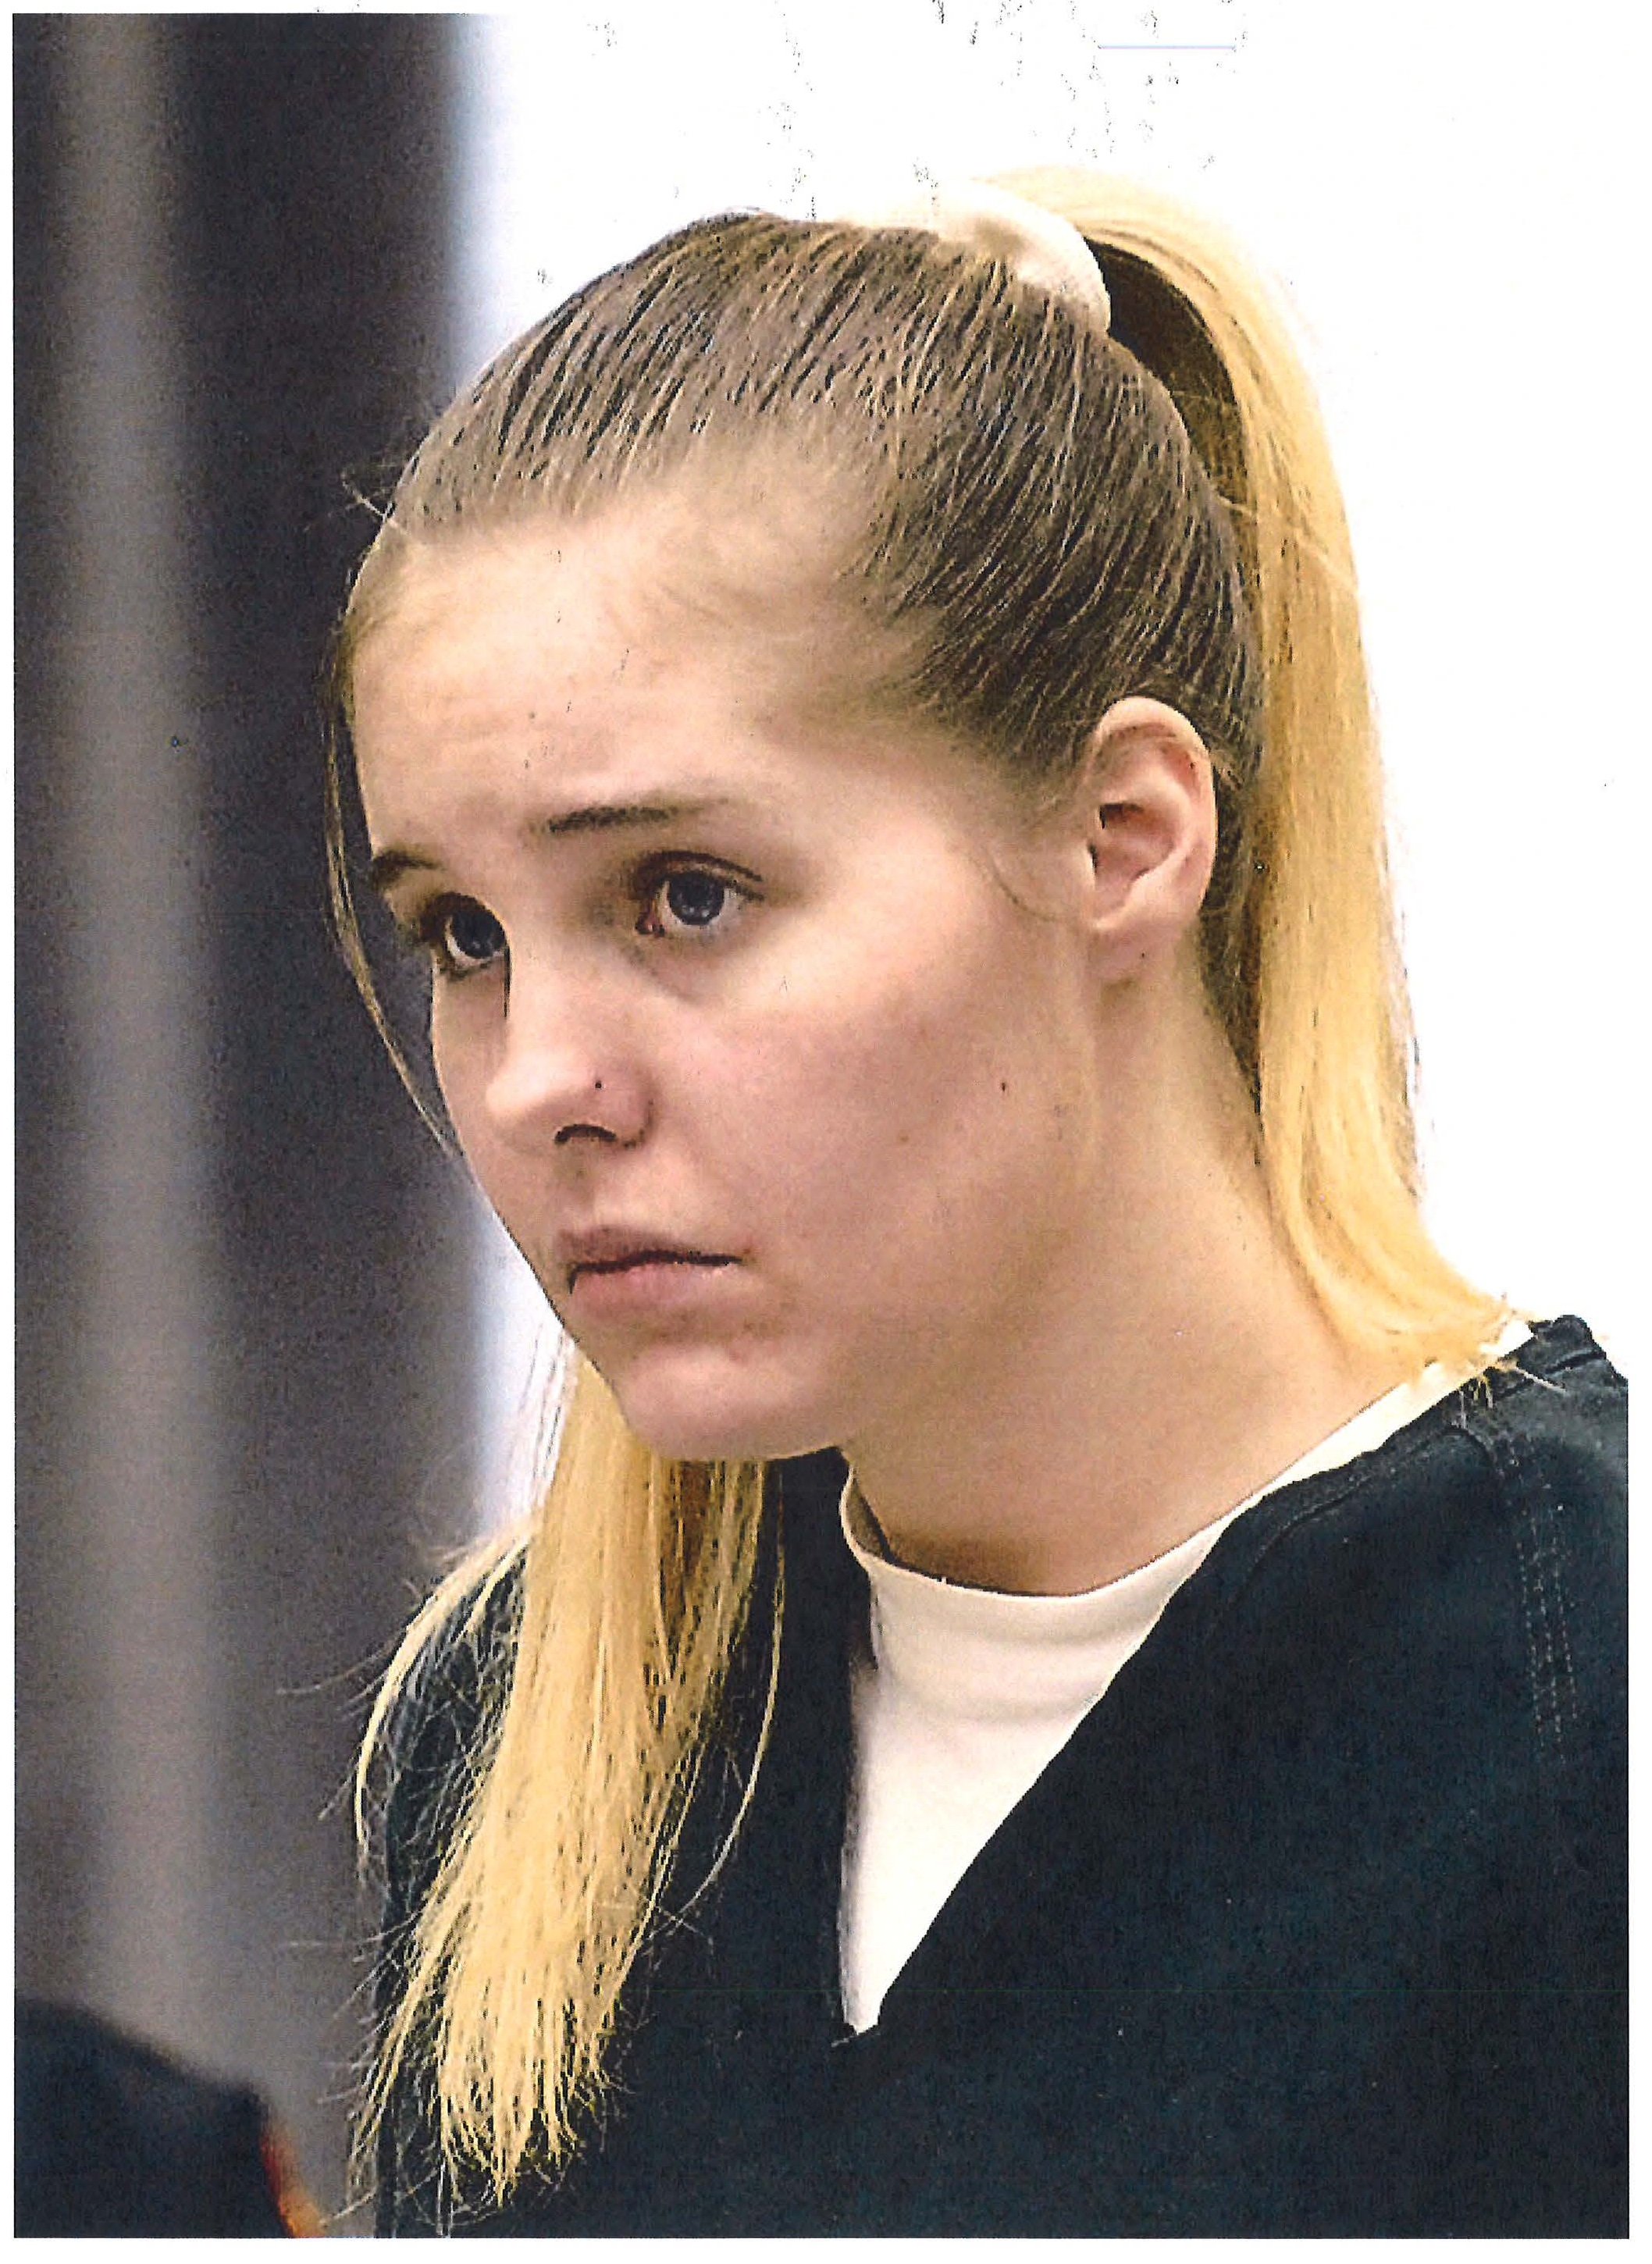 Krystal Riordan at her bail hearing after being arrested